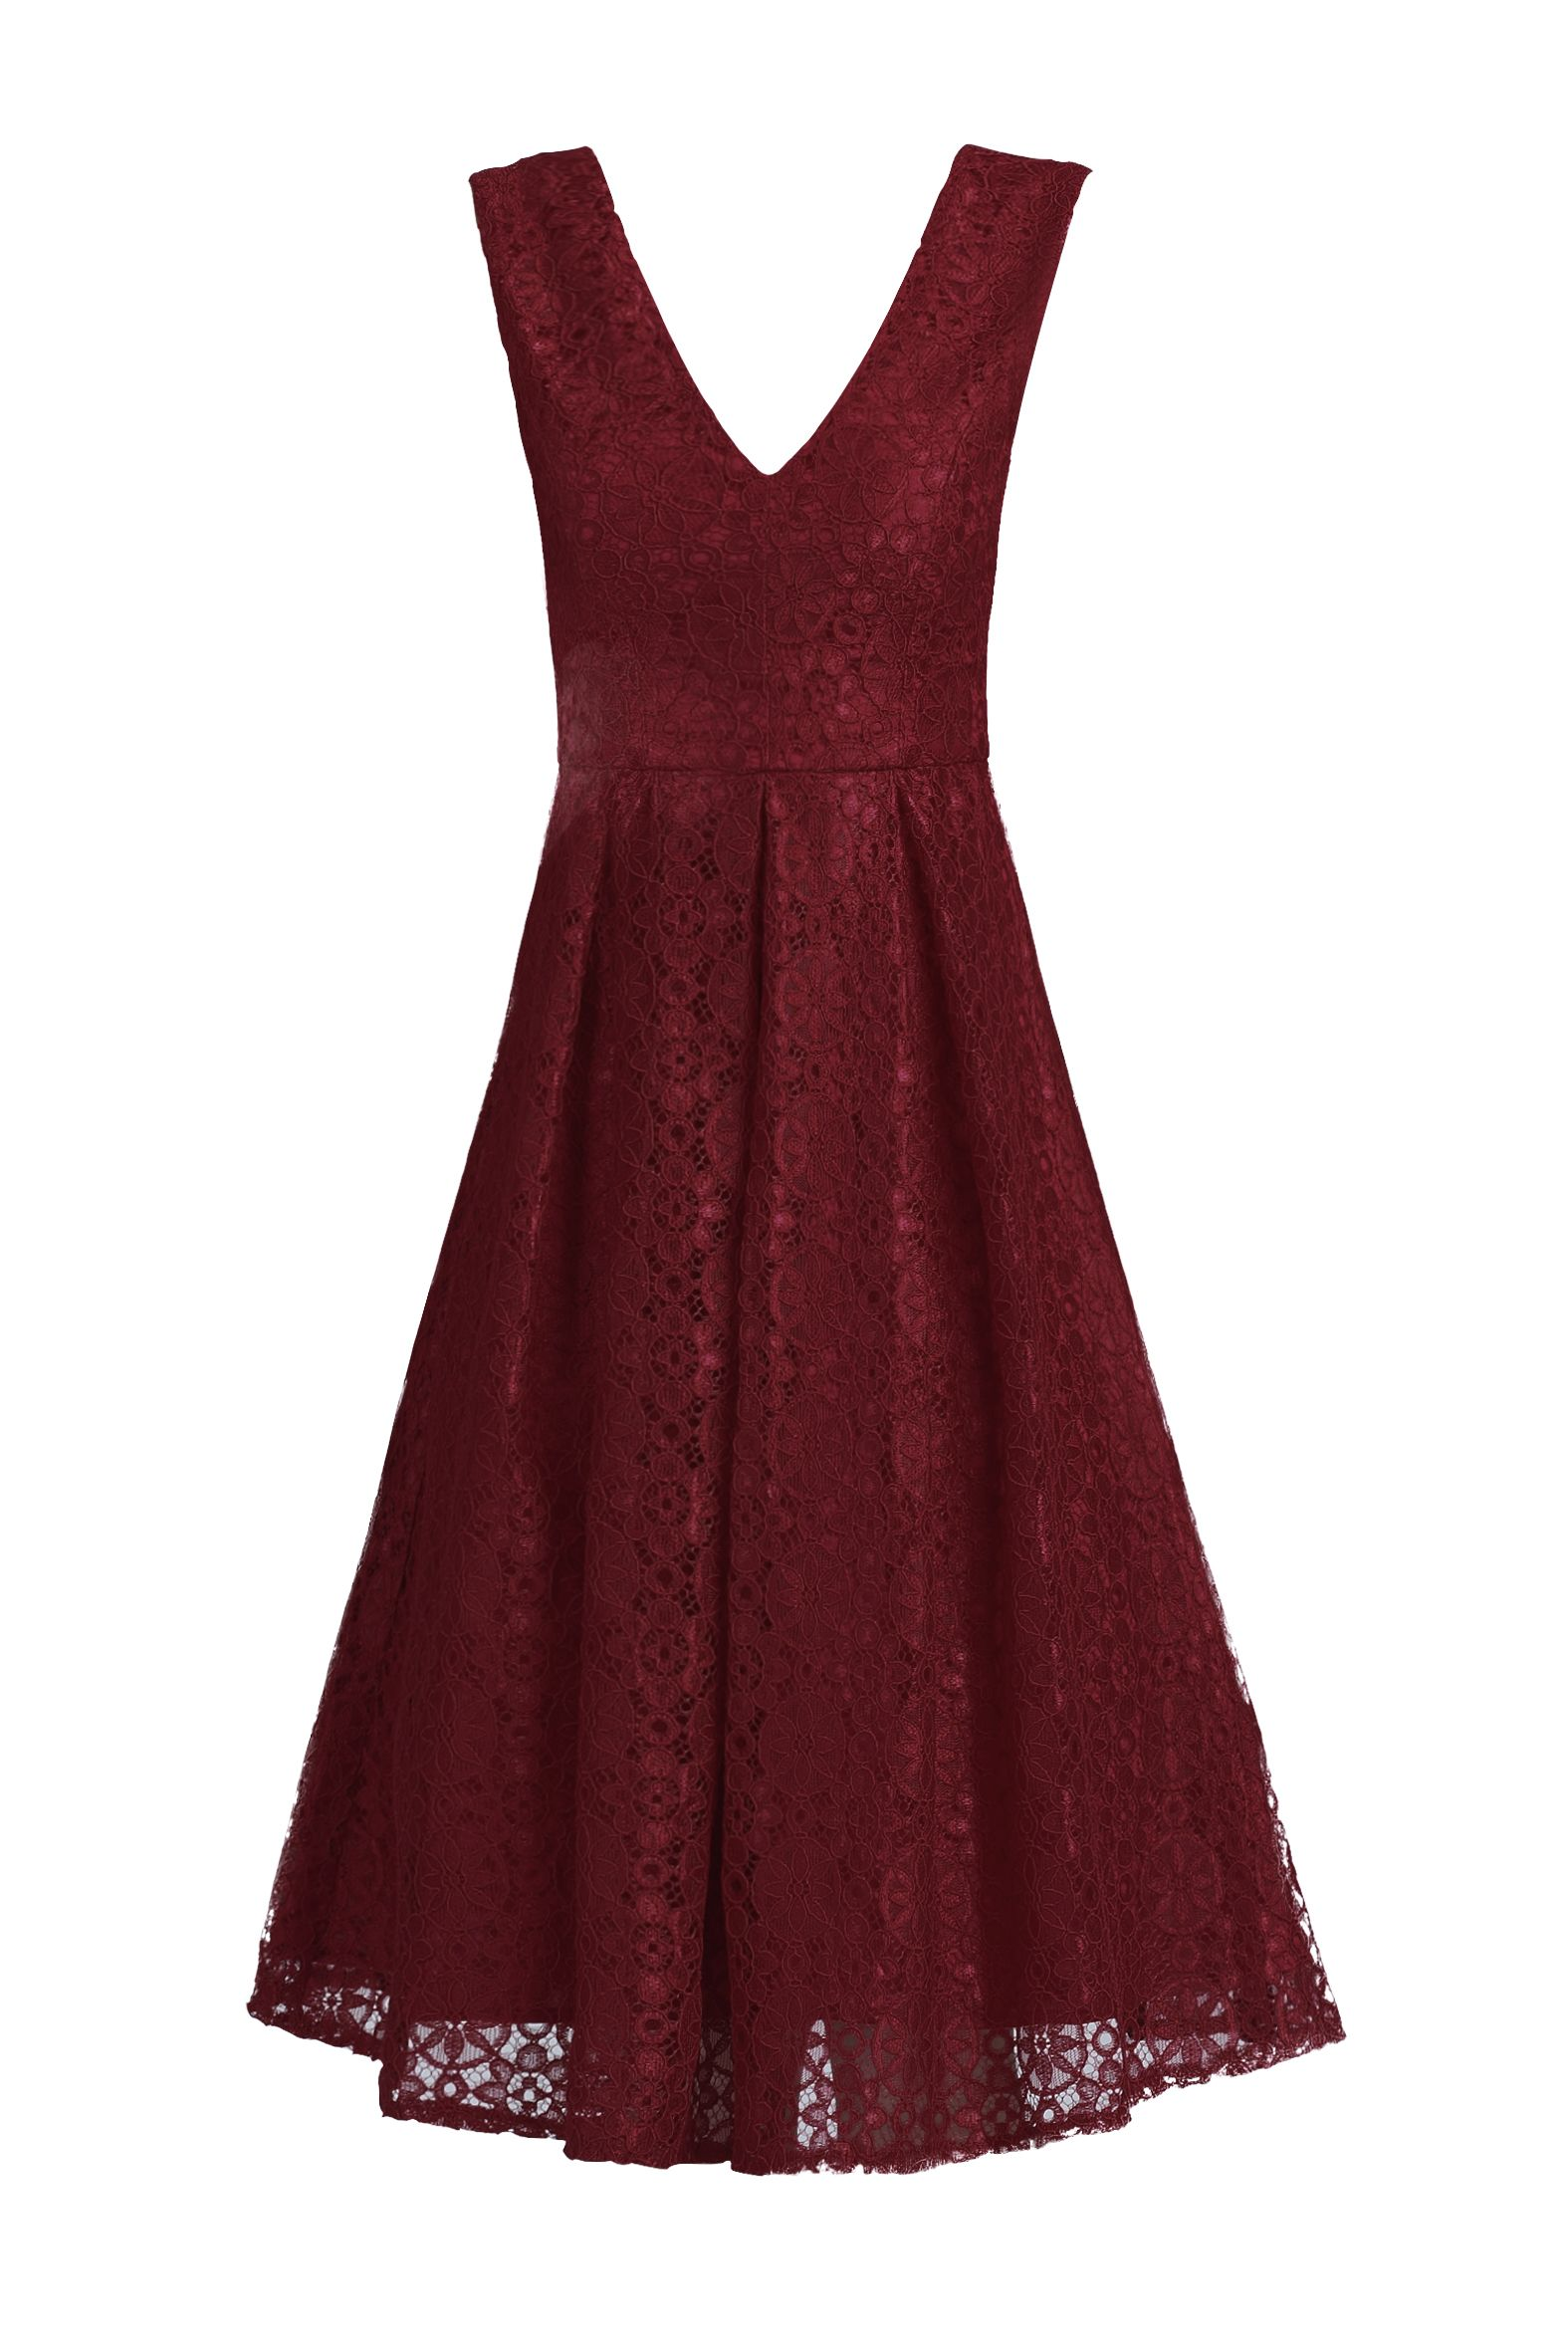 Jolie Moi 50s Pleated Lace Dress, Red